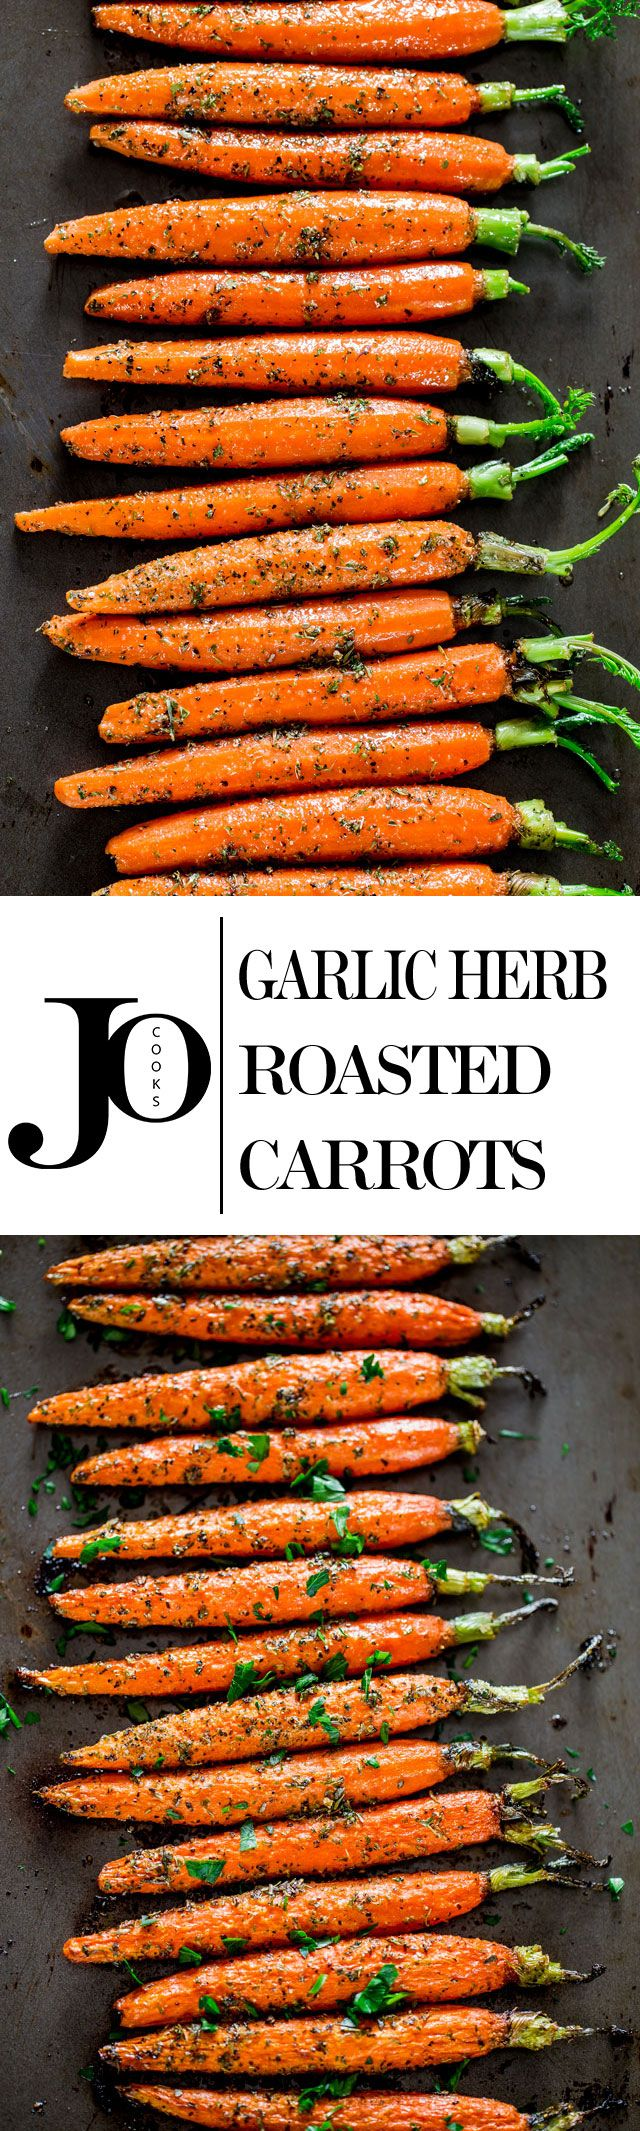 Garlic and Herb Roasted Carrots - Jo Cooks - these carrots are roasted to perfection with lots of garlic and herbs such as thyme, basil and oregano, creating the perfect side dish.